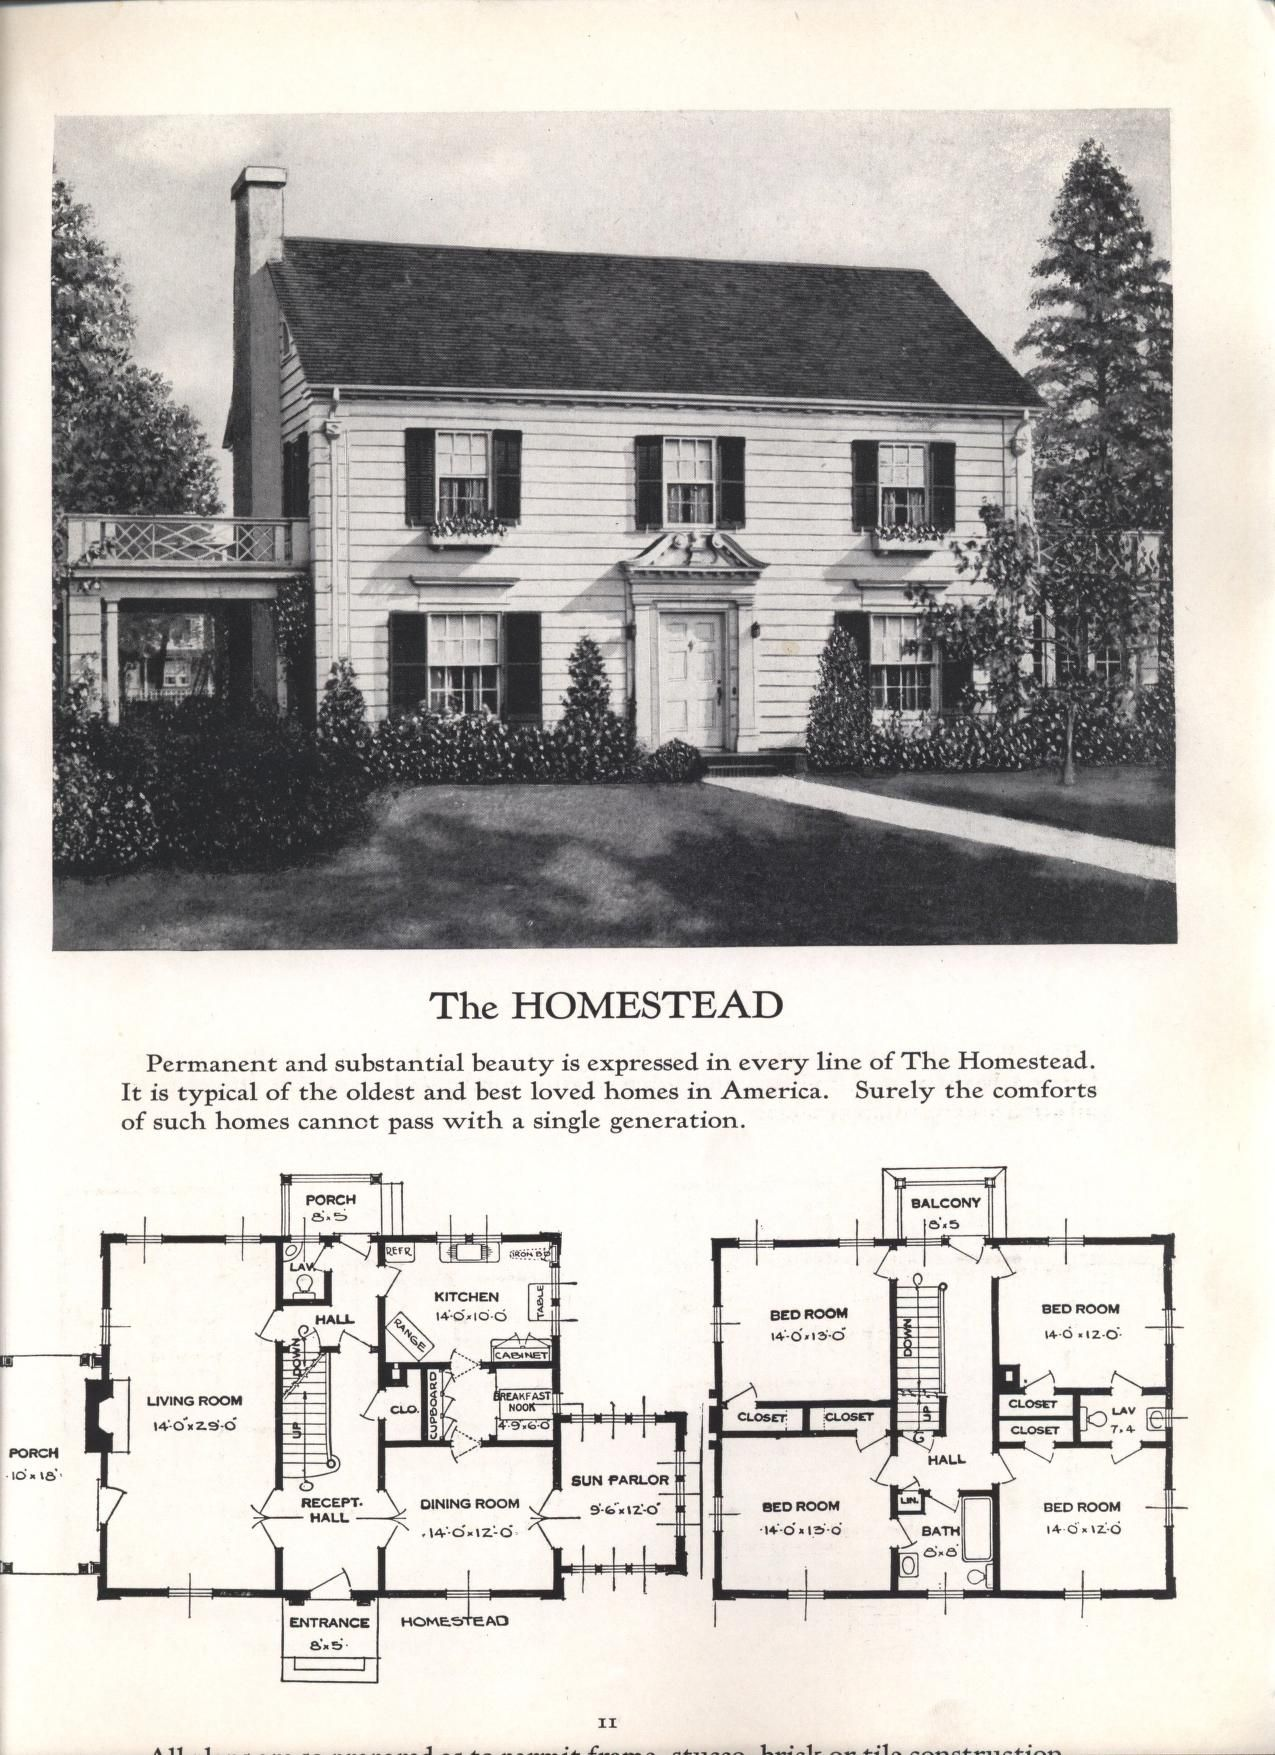 Better Homes At Lower Cost No 17 Standard Homes Co Free Download Borrow And Streaming Internet Archive Sims House Plans Vintage House Plans Colonial House Plans